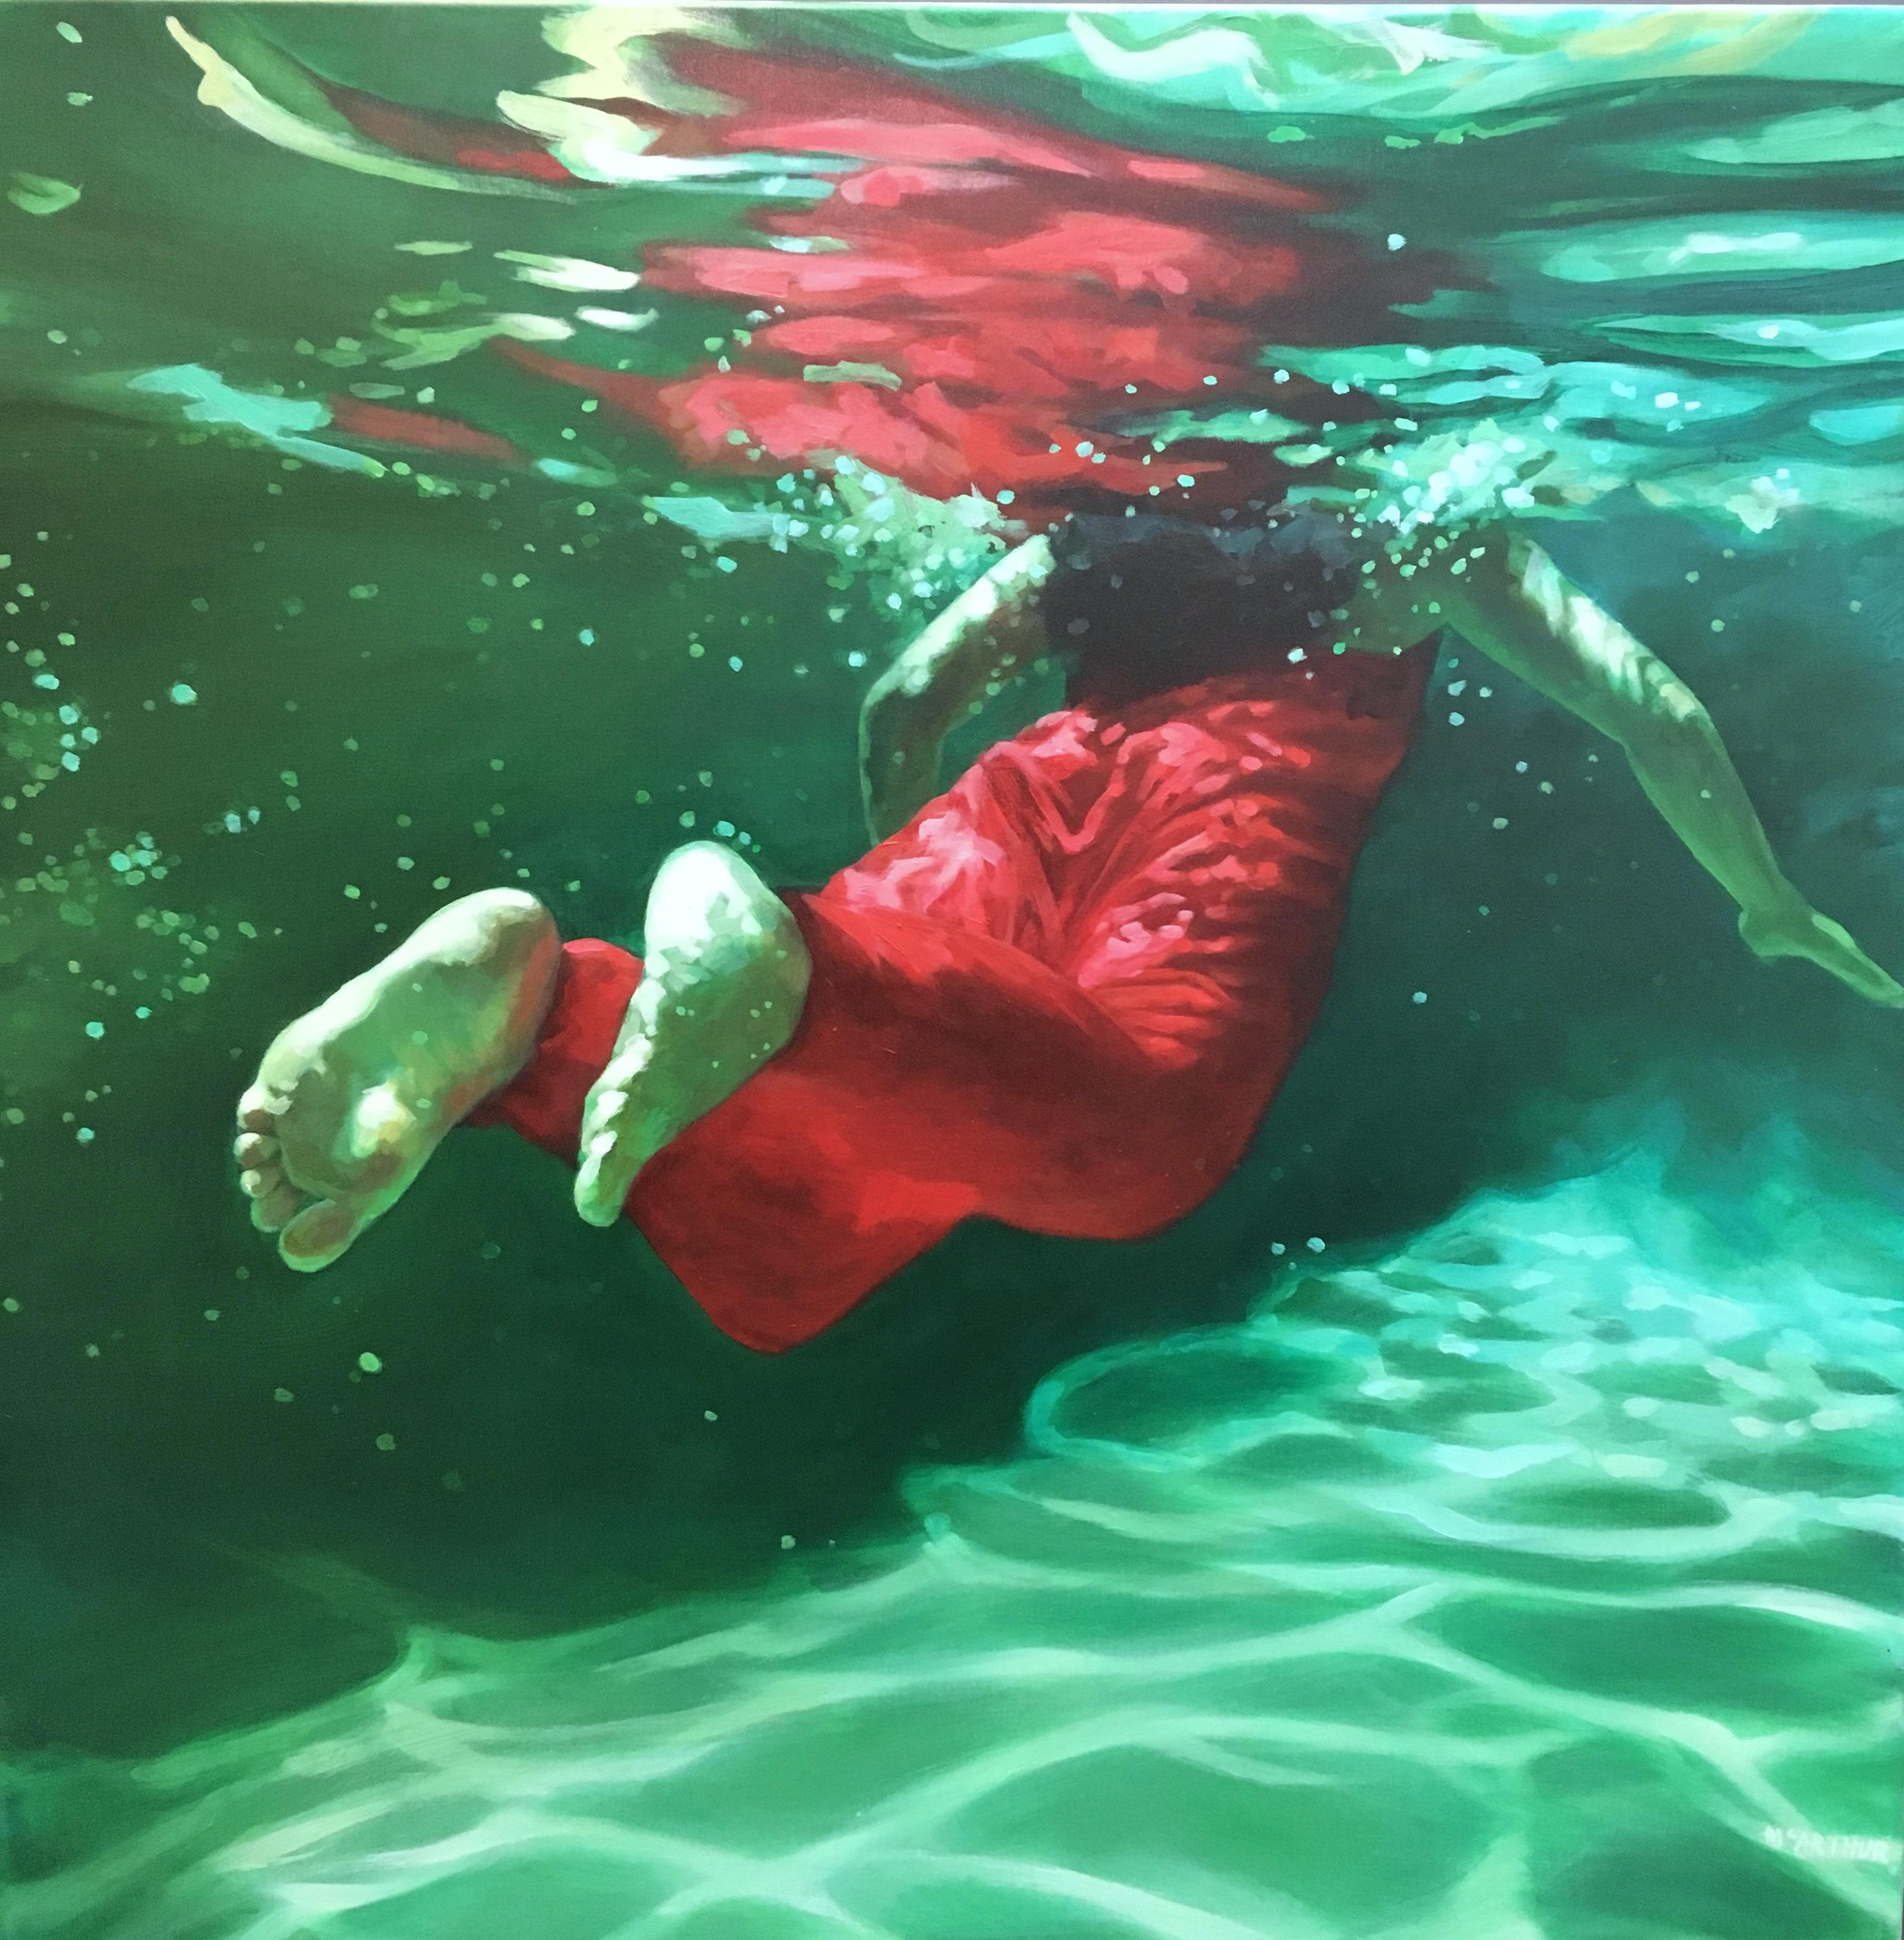 """""""Prism"""", Oil on canvas, underwater female swimmer with red dress, green water"""